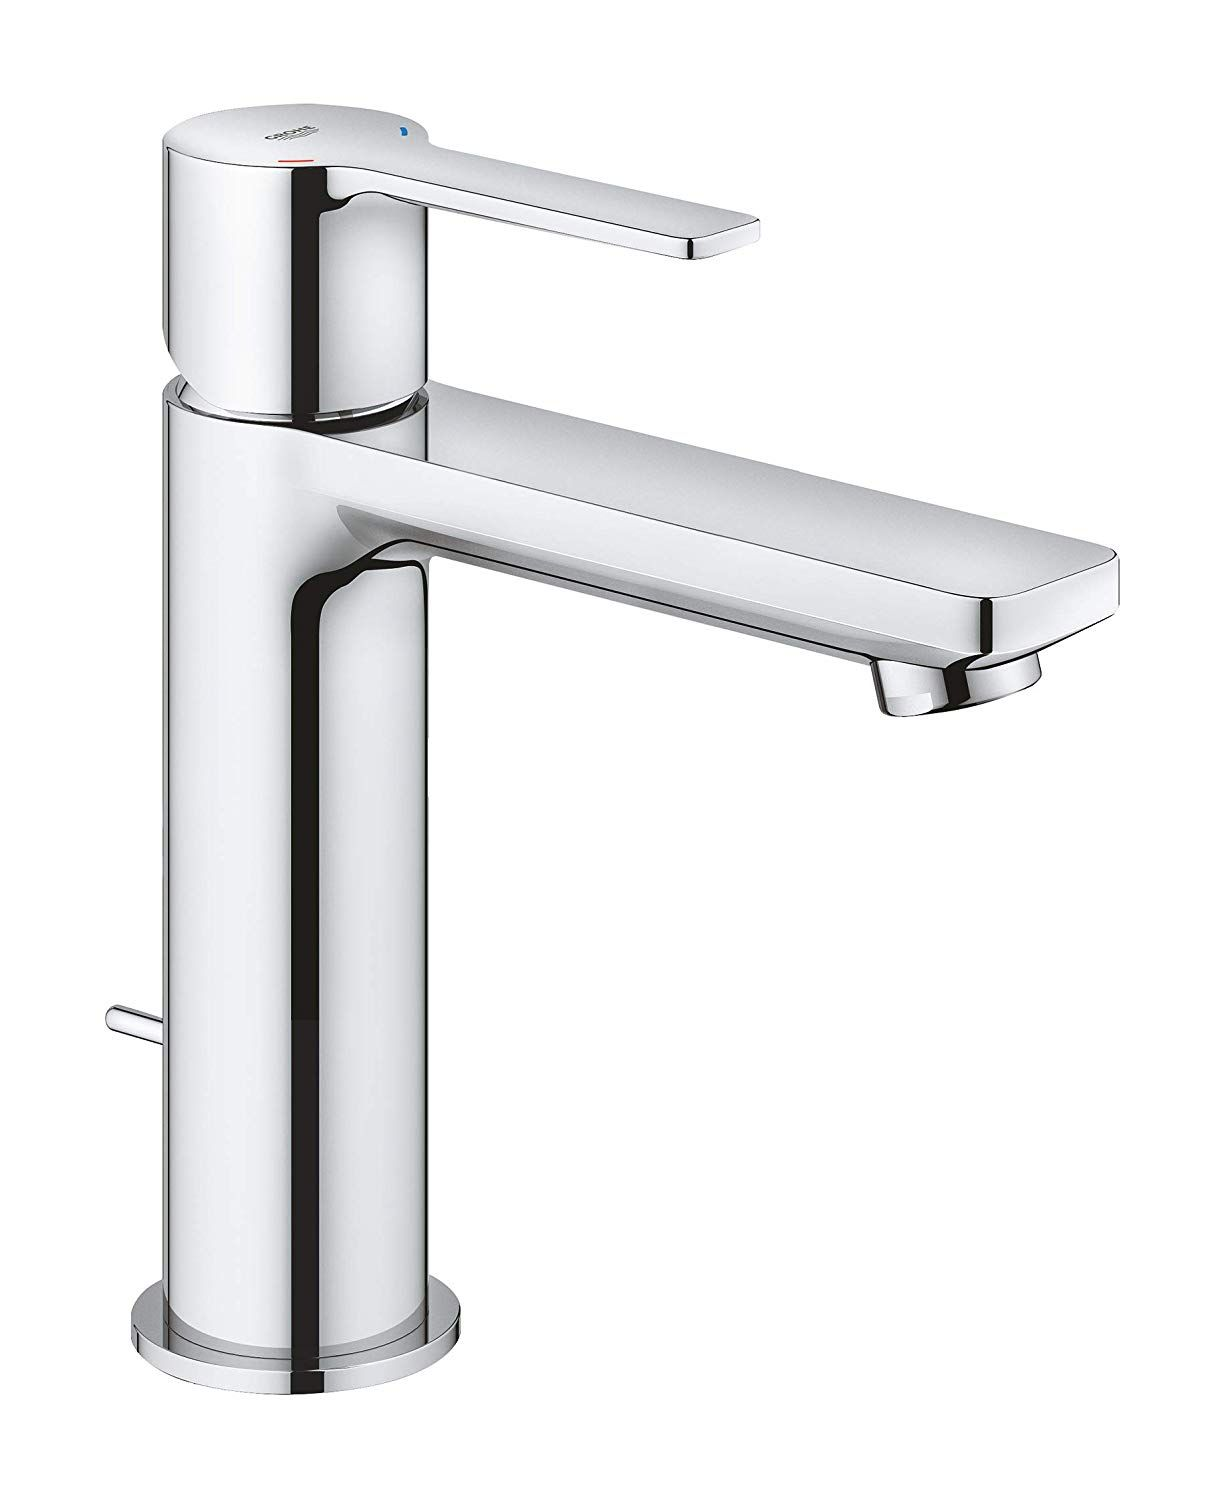 Grohe 2379400a Lineare Single Handle Bathroom Faucet S Size In Starlight Chrome Be Bathroom Faucets Single Handle Bathroom Faucet Bathroom Faucets Chrome [ 1500 x 1222 Pixel ]